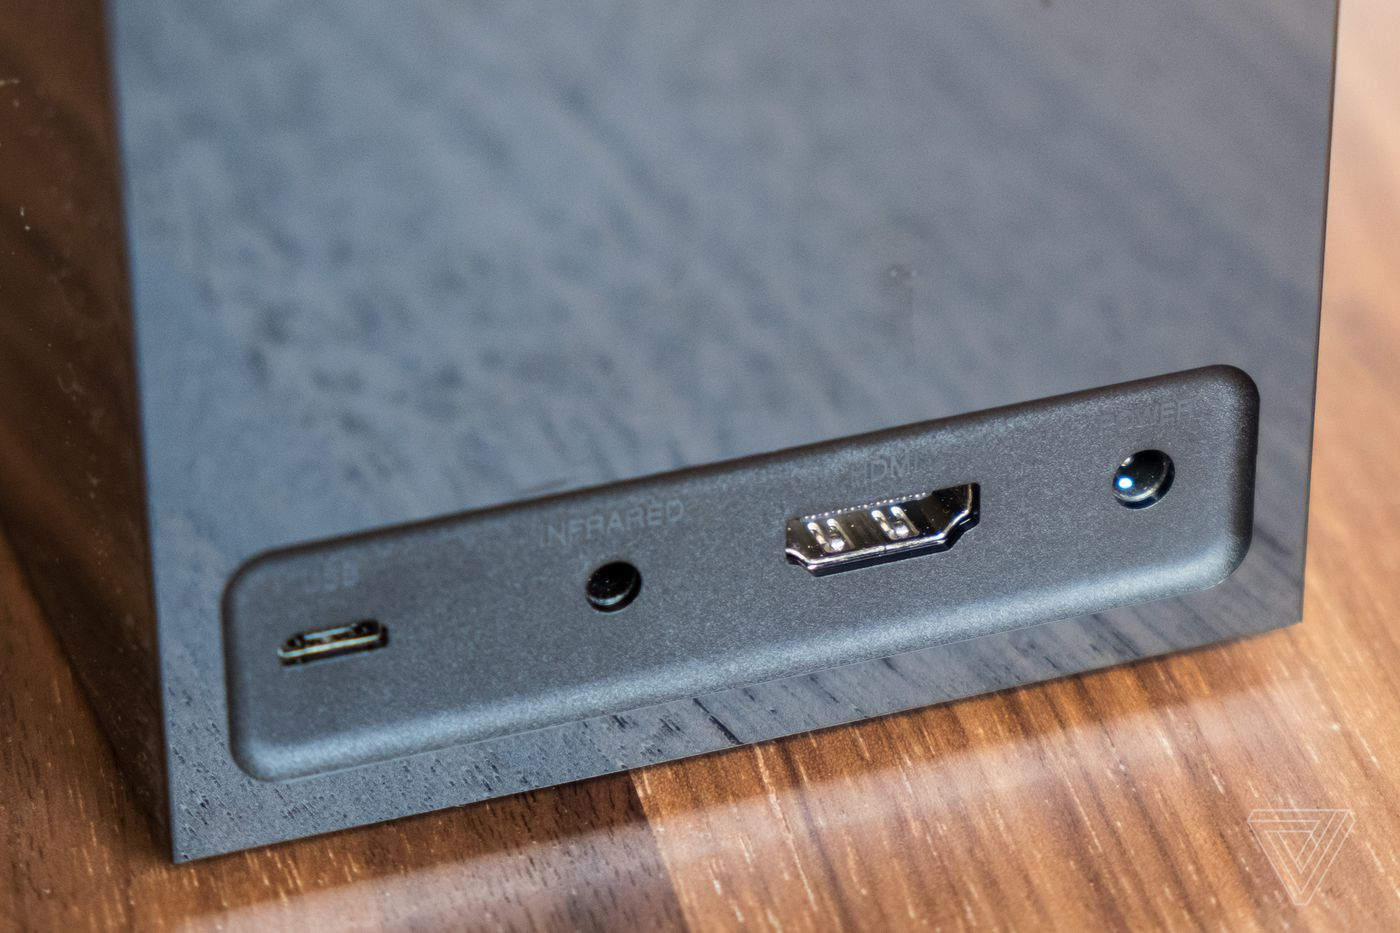 Amazon's Fire TV Cube is an Echo, streaming box, and